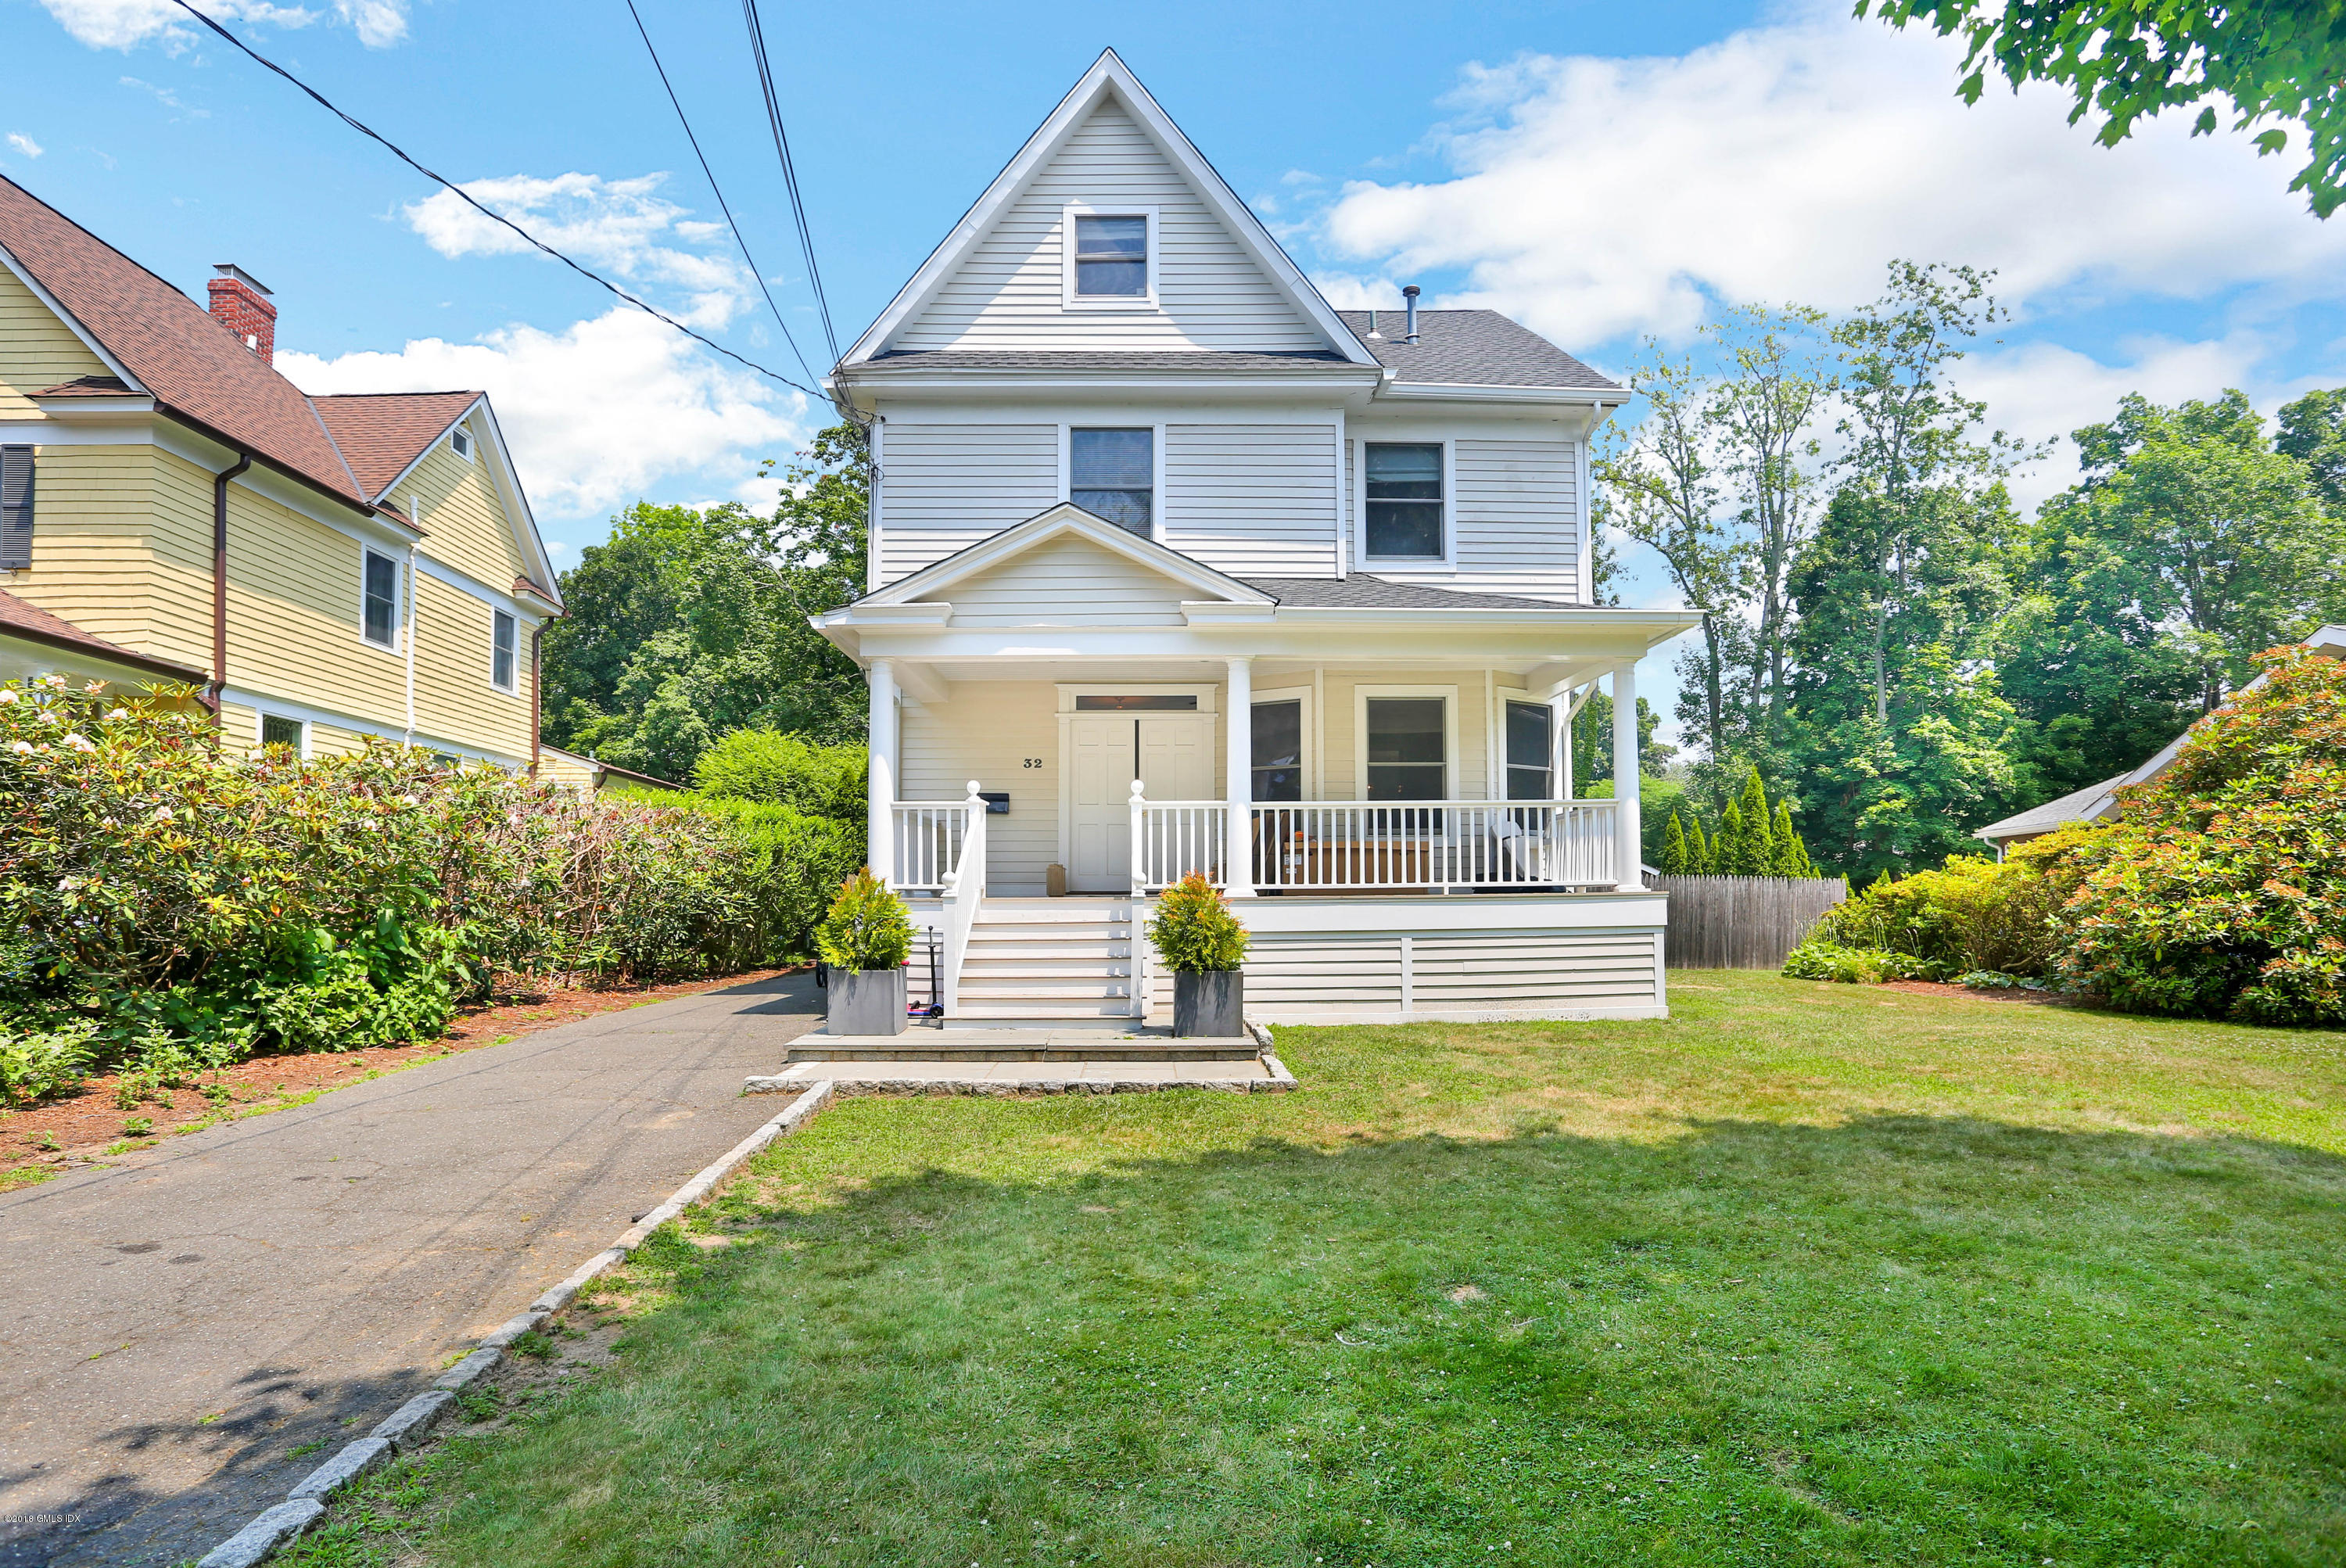 32 Highview Avenue,Old Greenwich,Connecticut 06870,5 Bedrooms Bedrooms,4 BathroomsBathrooms,Single family,Highview,106673